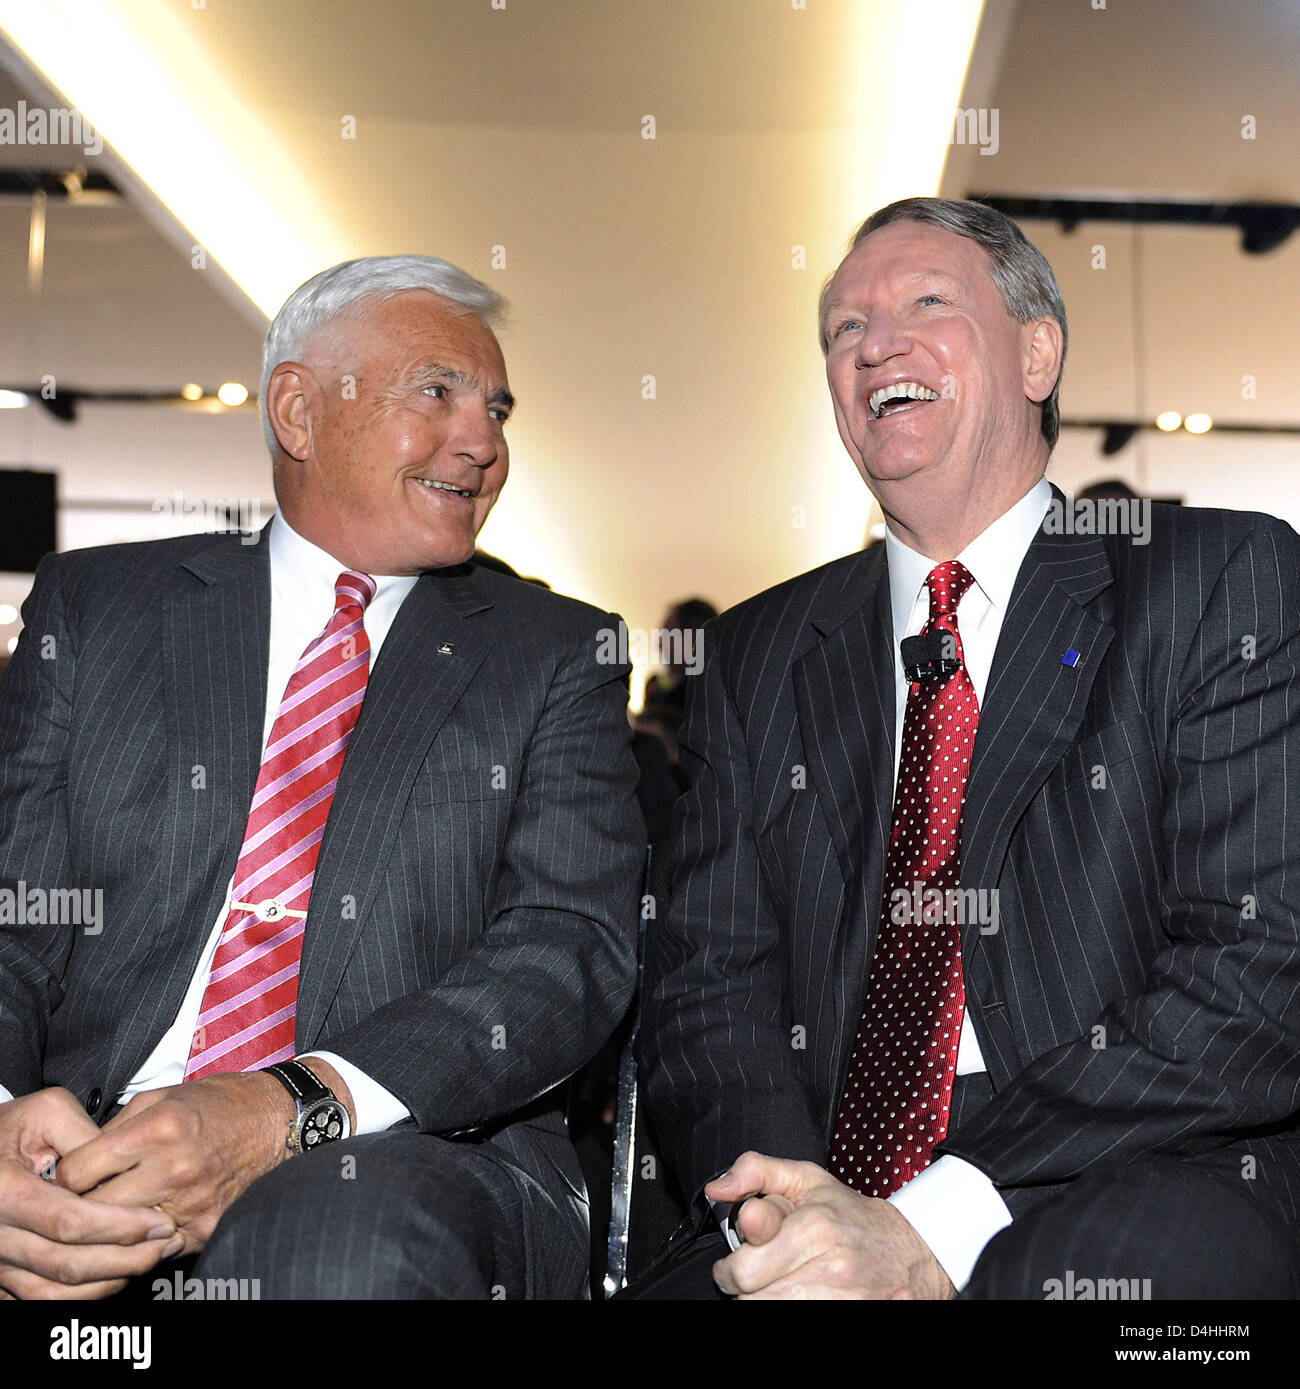 CEO of General Motors, Rick Wagoner (R), and Vice Chairman of General Motors, Bob Lutz, laugh during the North American Stock Photo